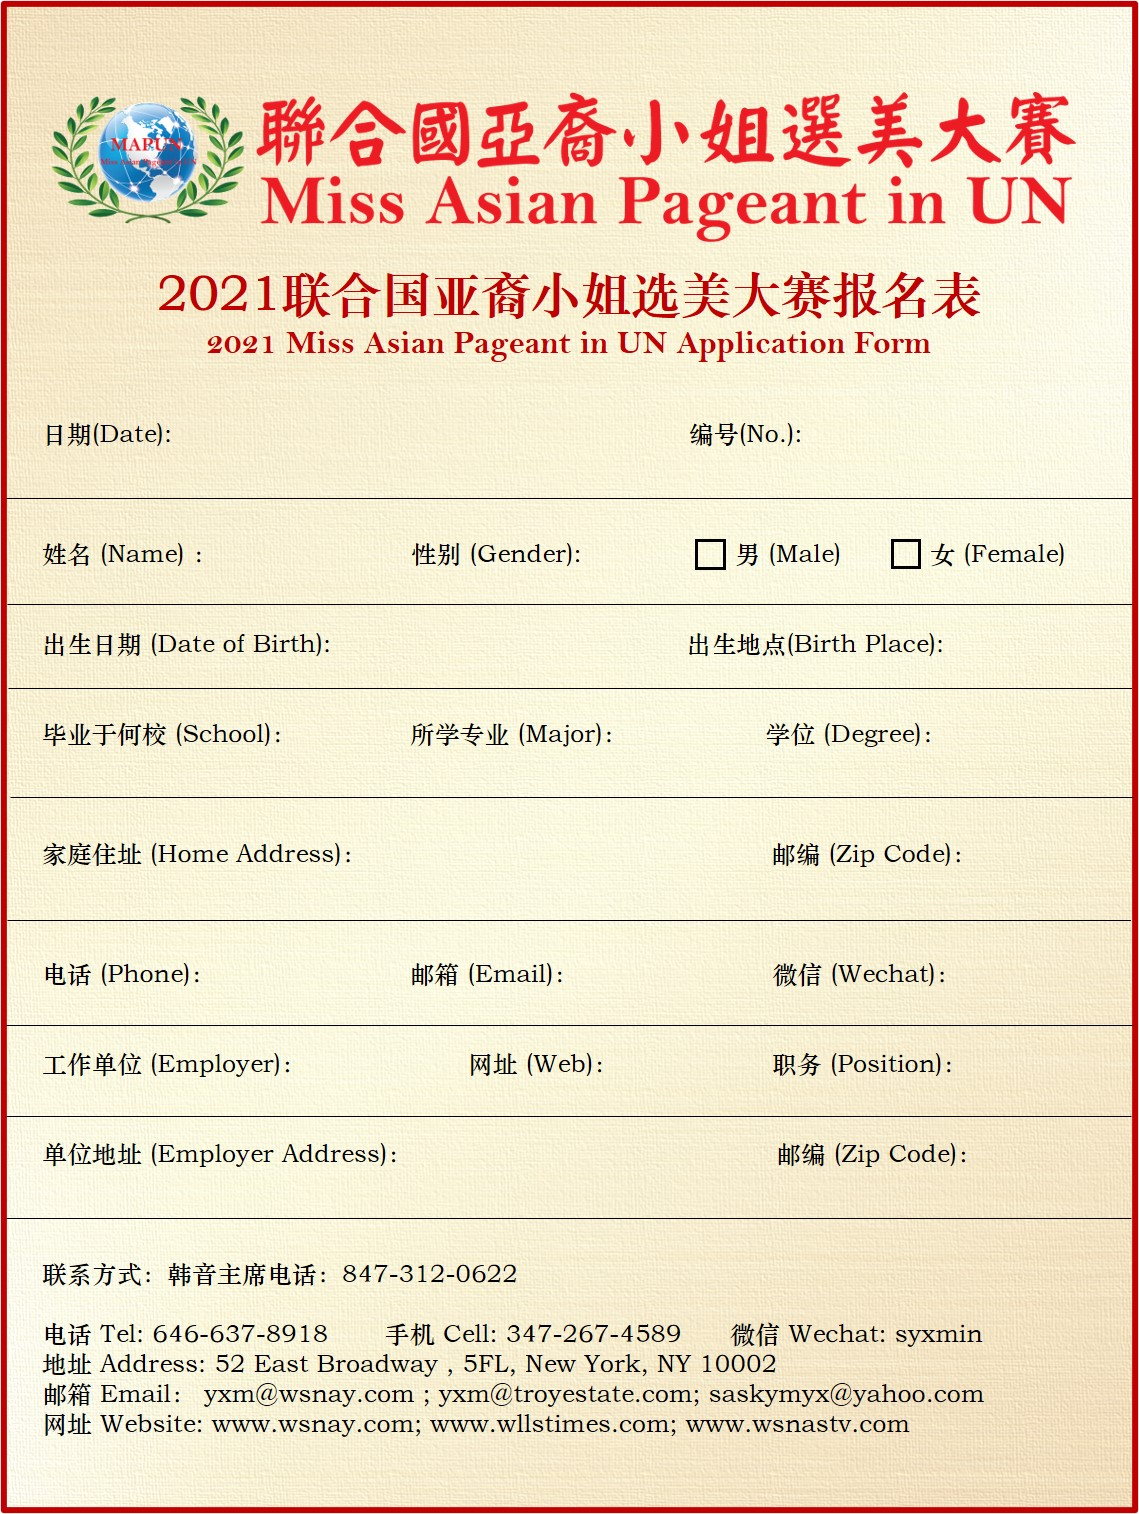 2021 Miss Asian Pageant in UN Application Form Page 01